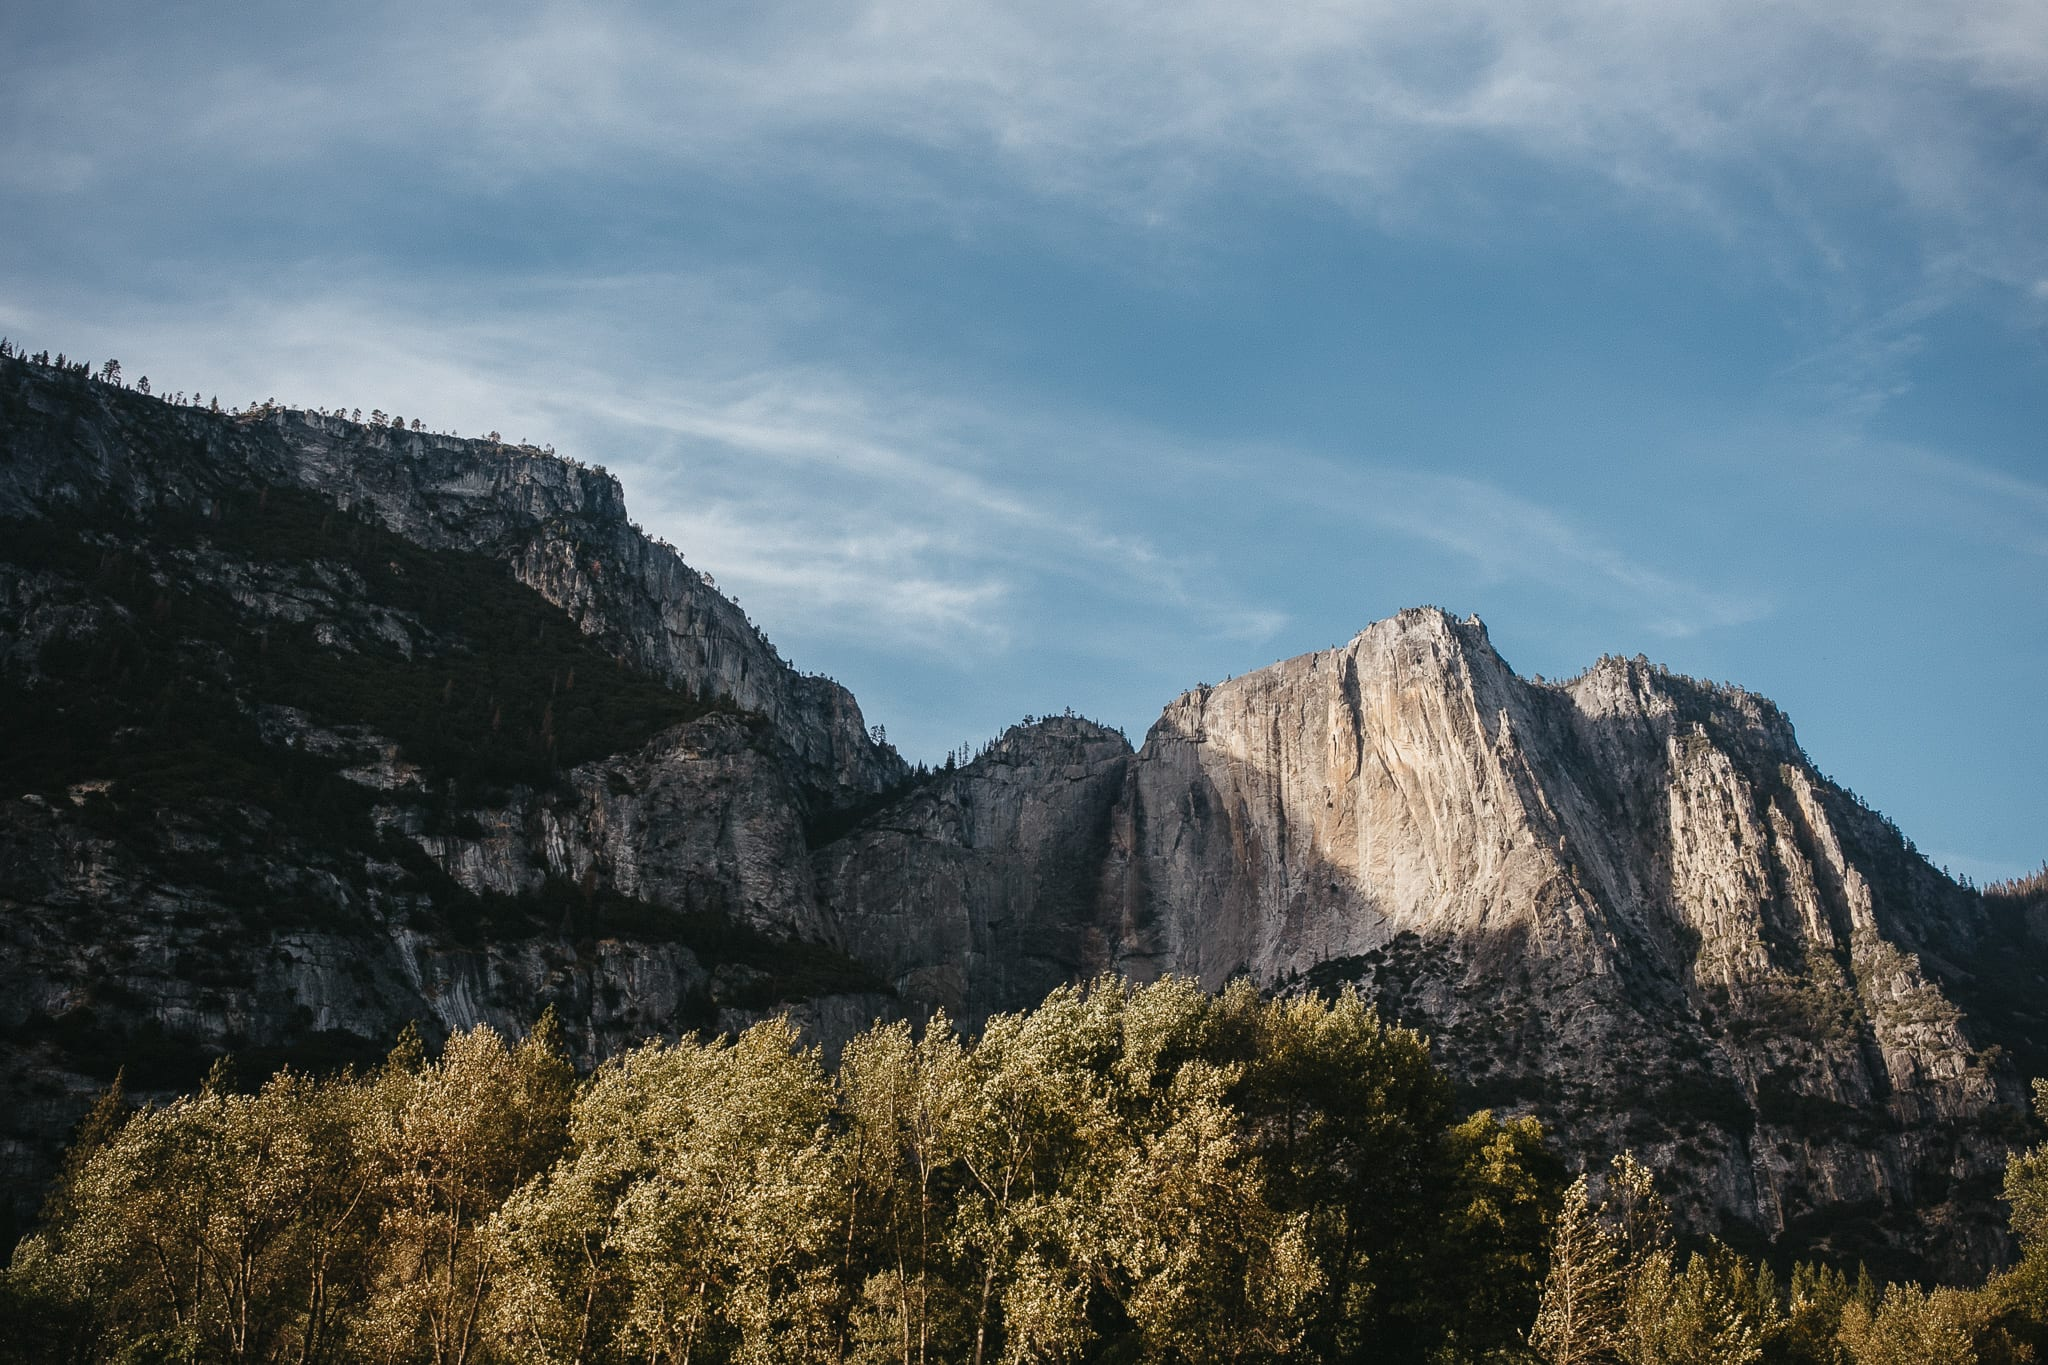 clouds-rest-yosemite-california-engagement-lifestyle-adventure-photographer-32